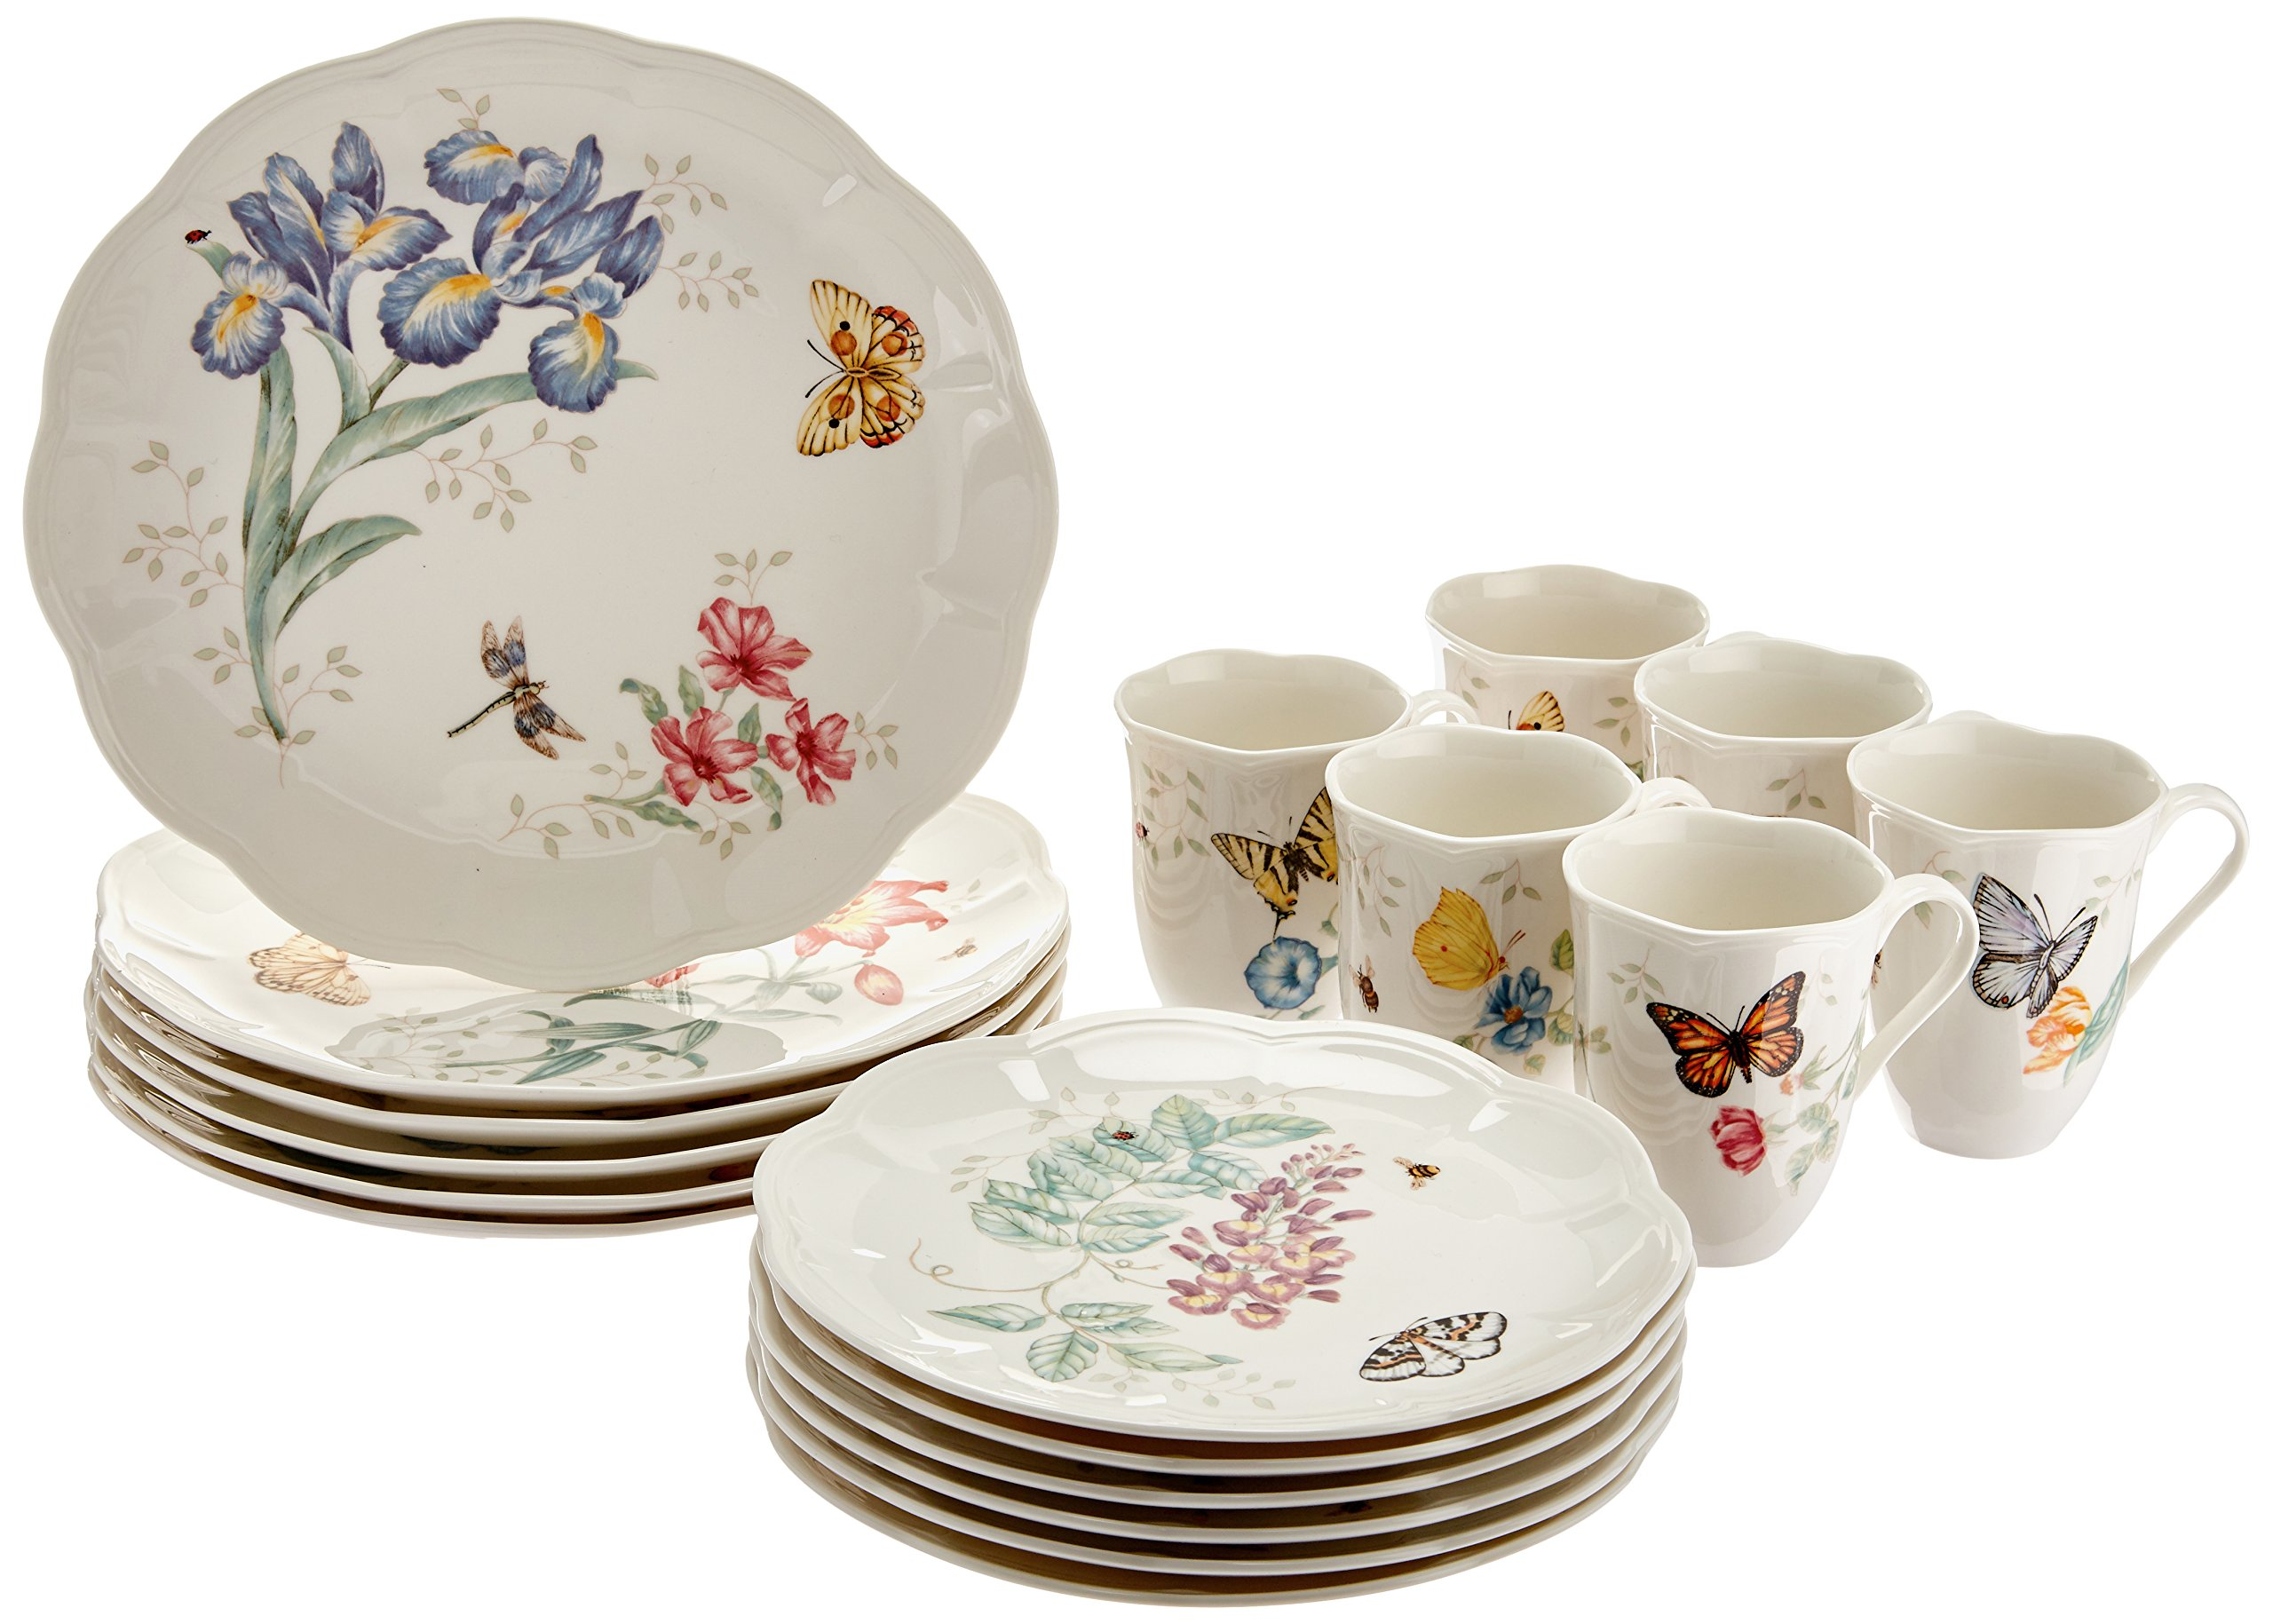 Lenox Butterfly Meadow 18-Piece Dinnerware Set, Service for 6 by Lenox